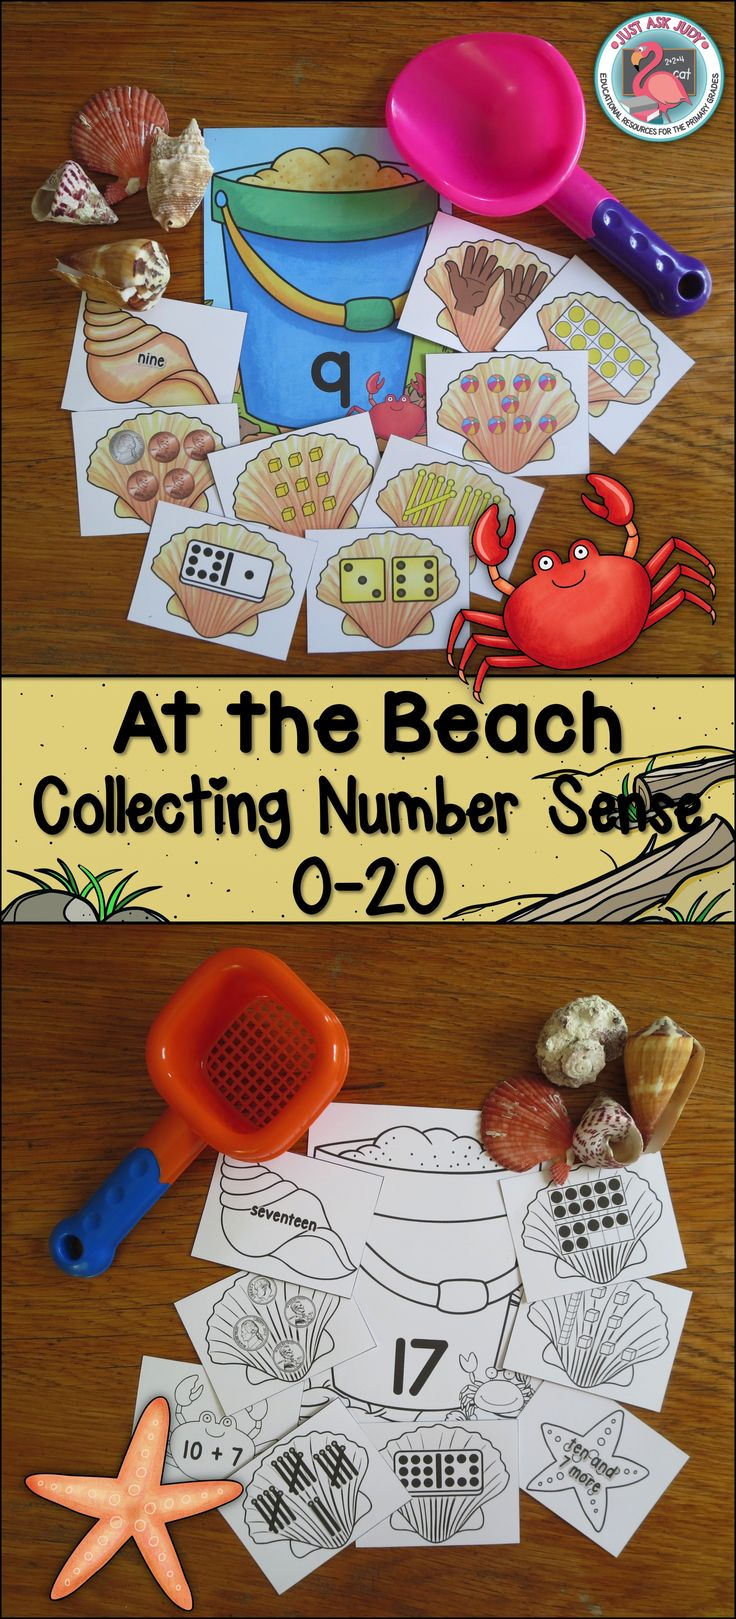 This beach themed sorting activity is perfect for teaching basic number sense 0-20 in preschool, kindergarten, and the beginning of first grade. The beach theme works well for the end of the school year, summer school, or the beginning of the school year. This number sense activity is ideal for either resource or intervention groups or as an independent math station. $